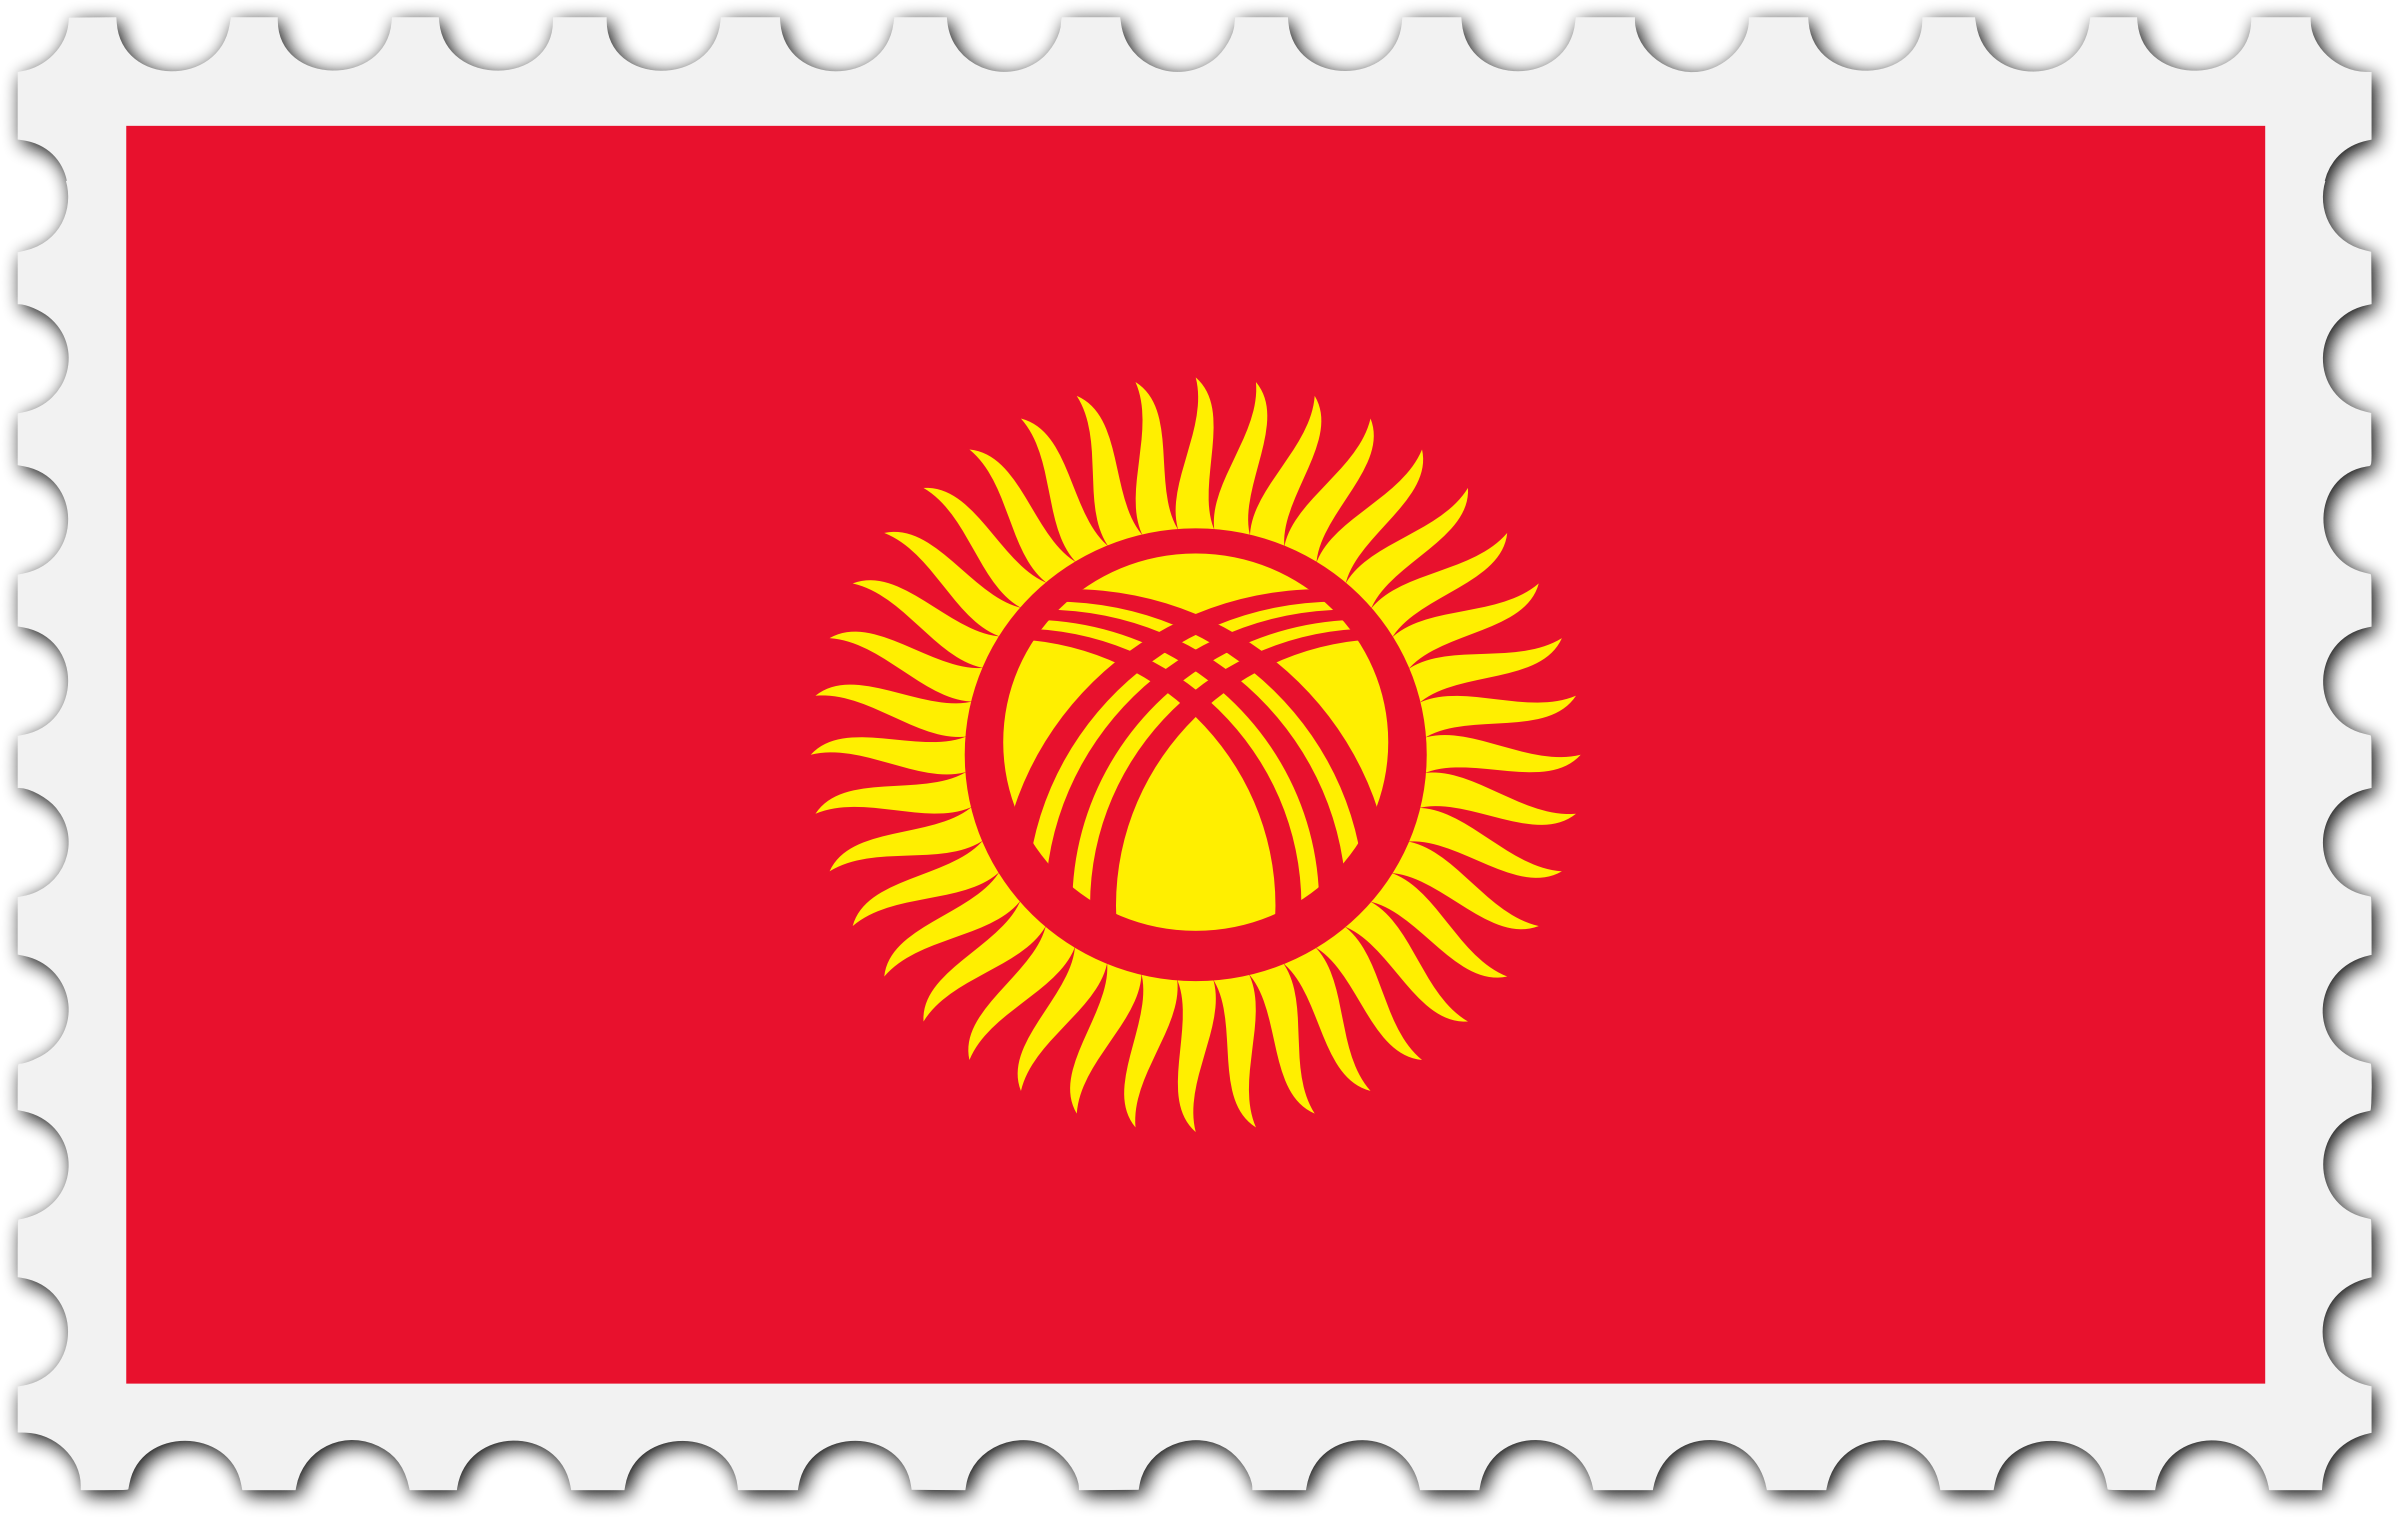 Kyrgyzstan flag stamp by Firkin